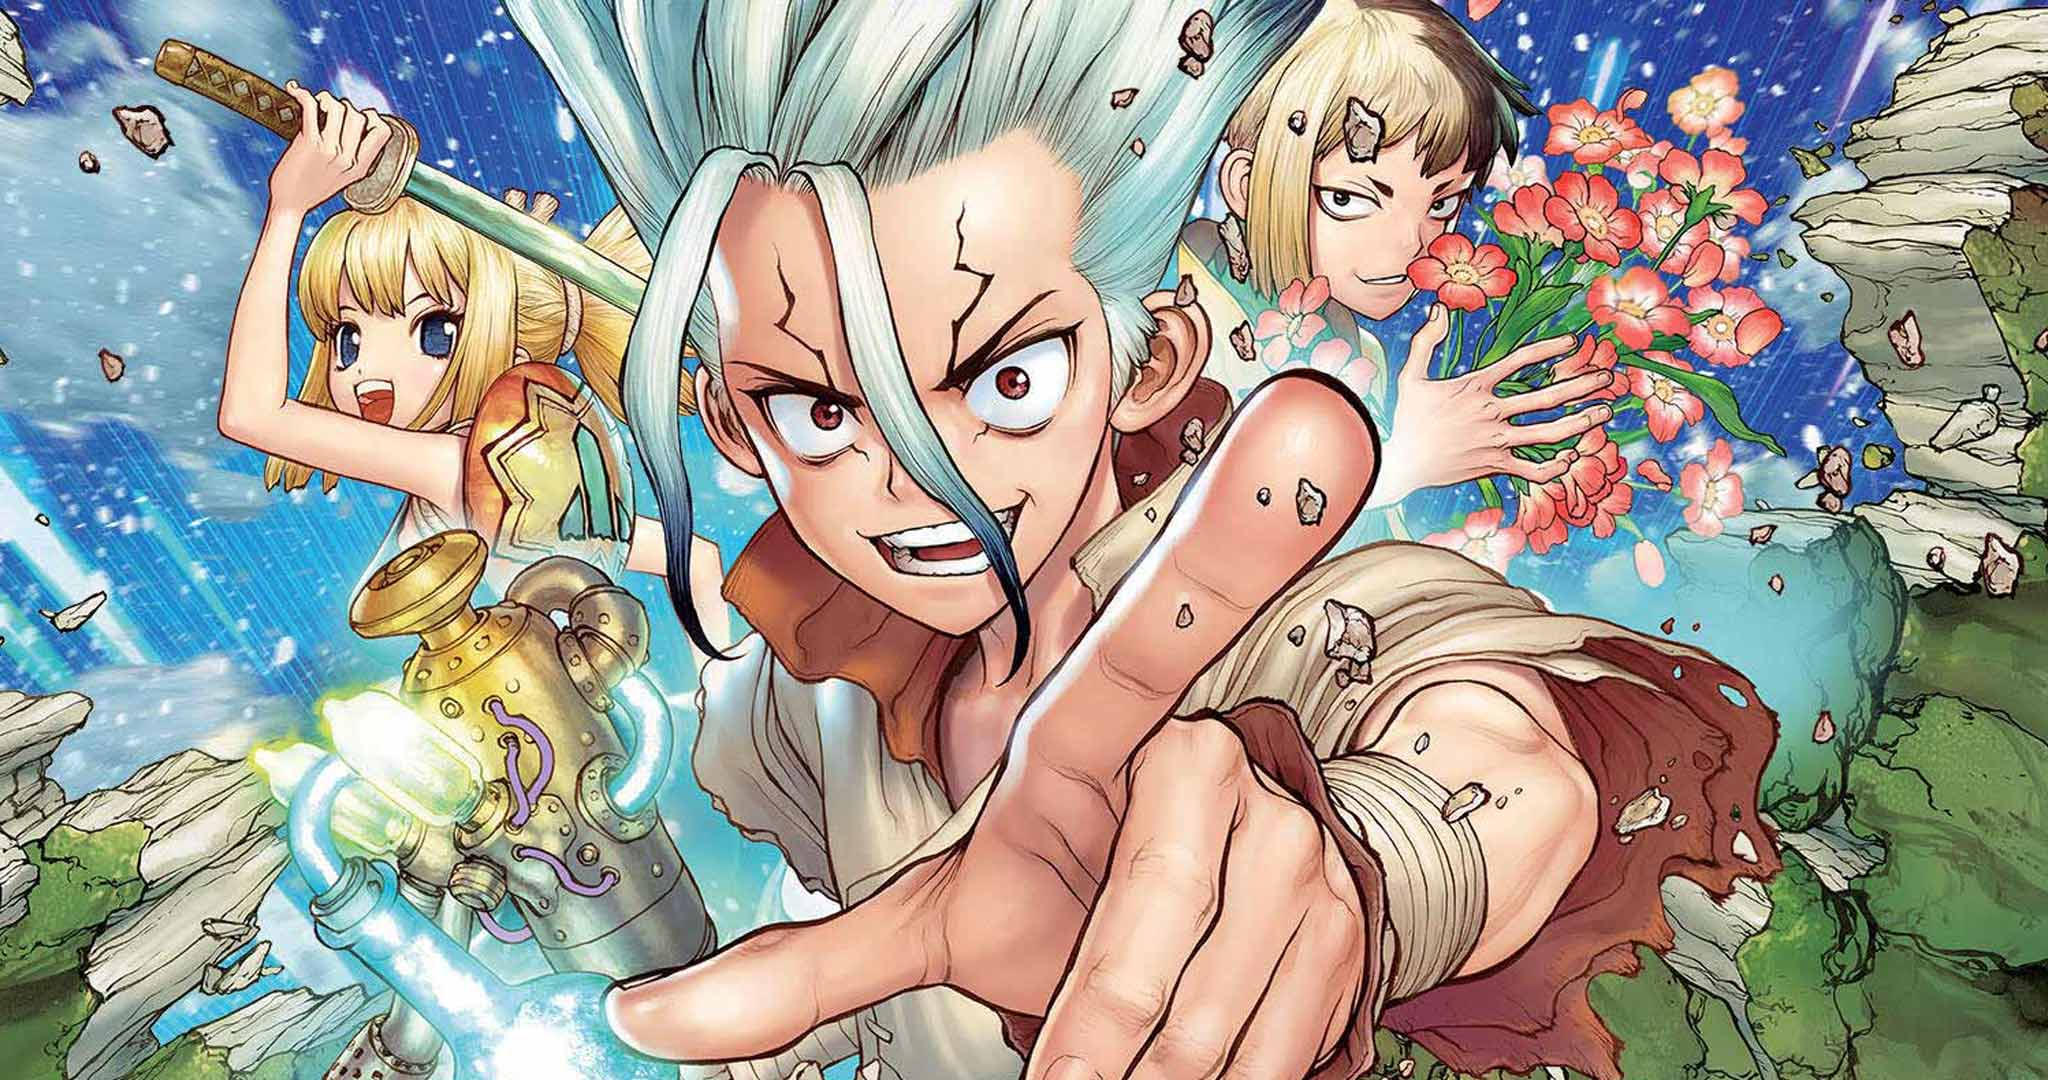 Dr. Stone' Episode 24 Release Date and Spoilers: What We